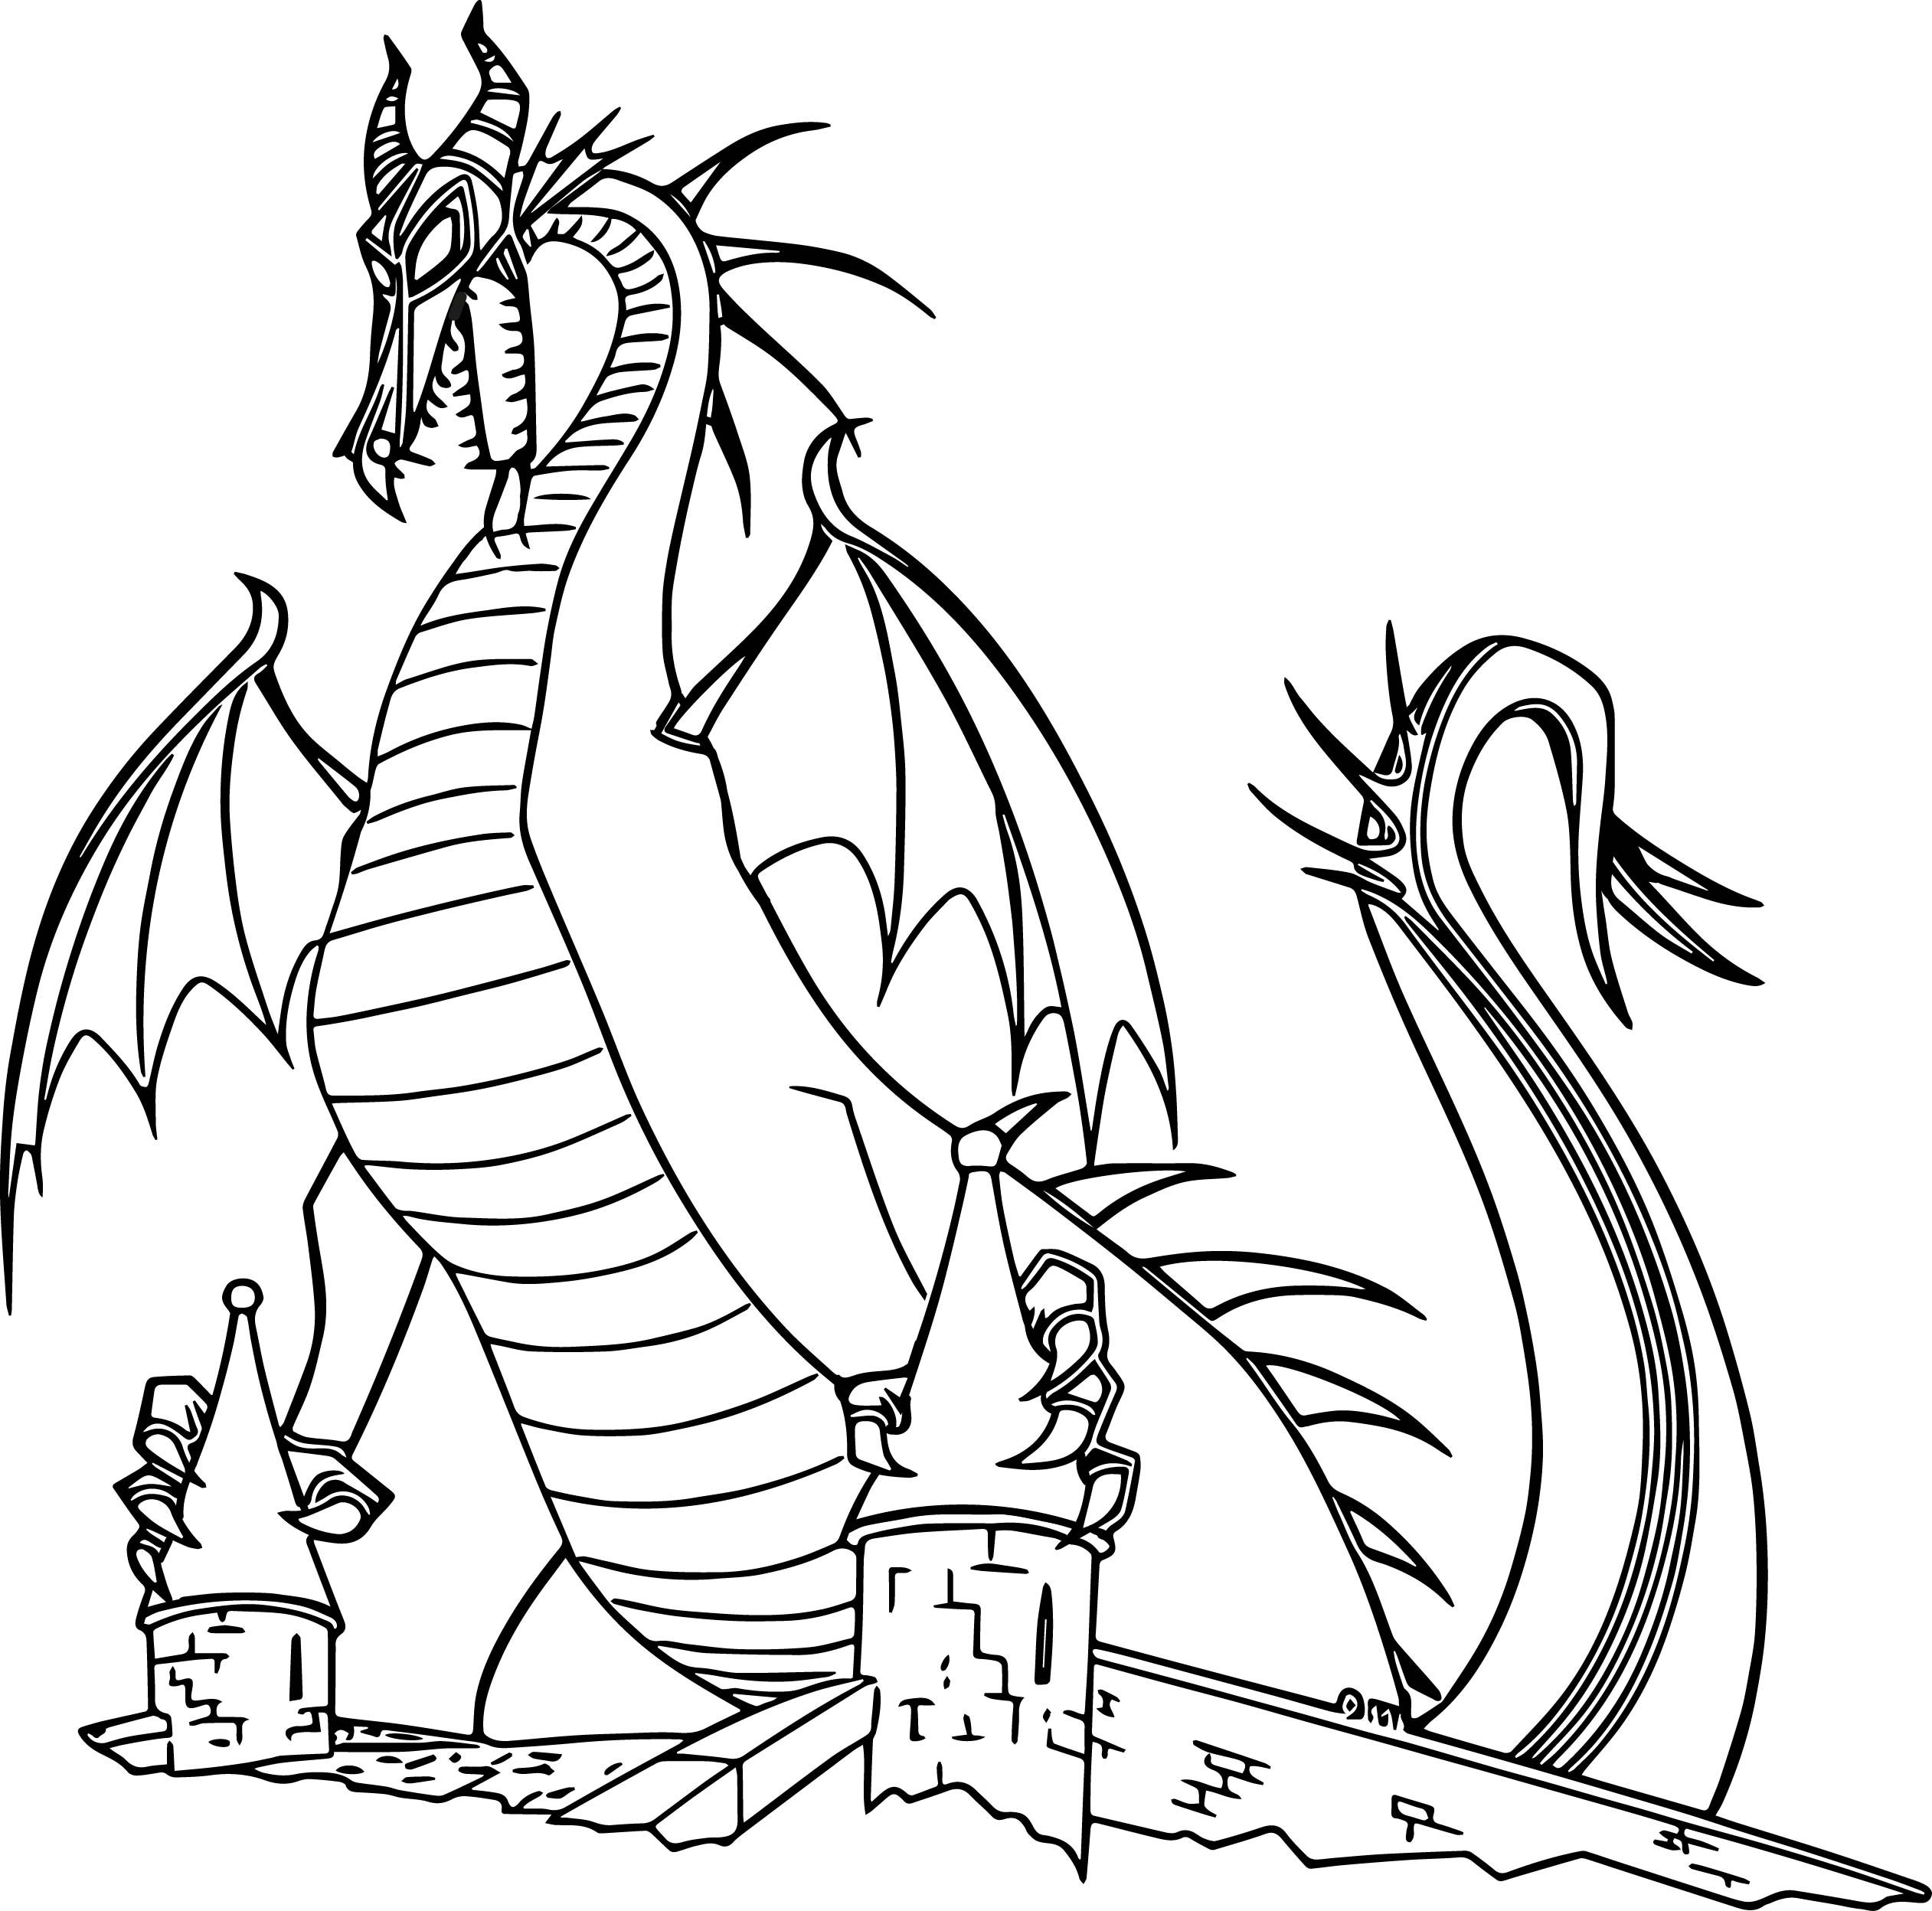 coloring pages dragon dragon coloring pages free download on clipartmag dragon coloring pages